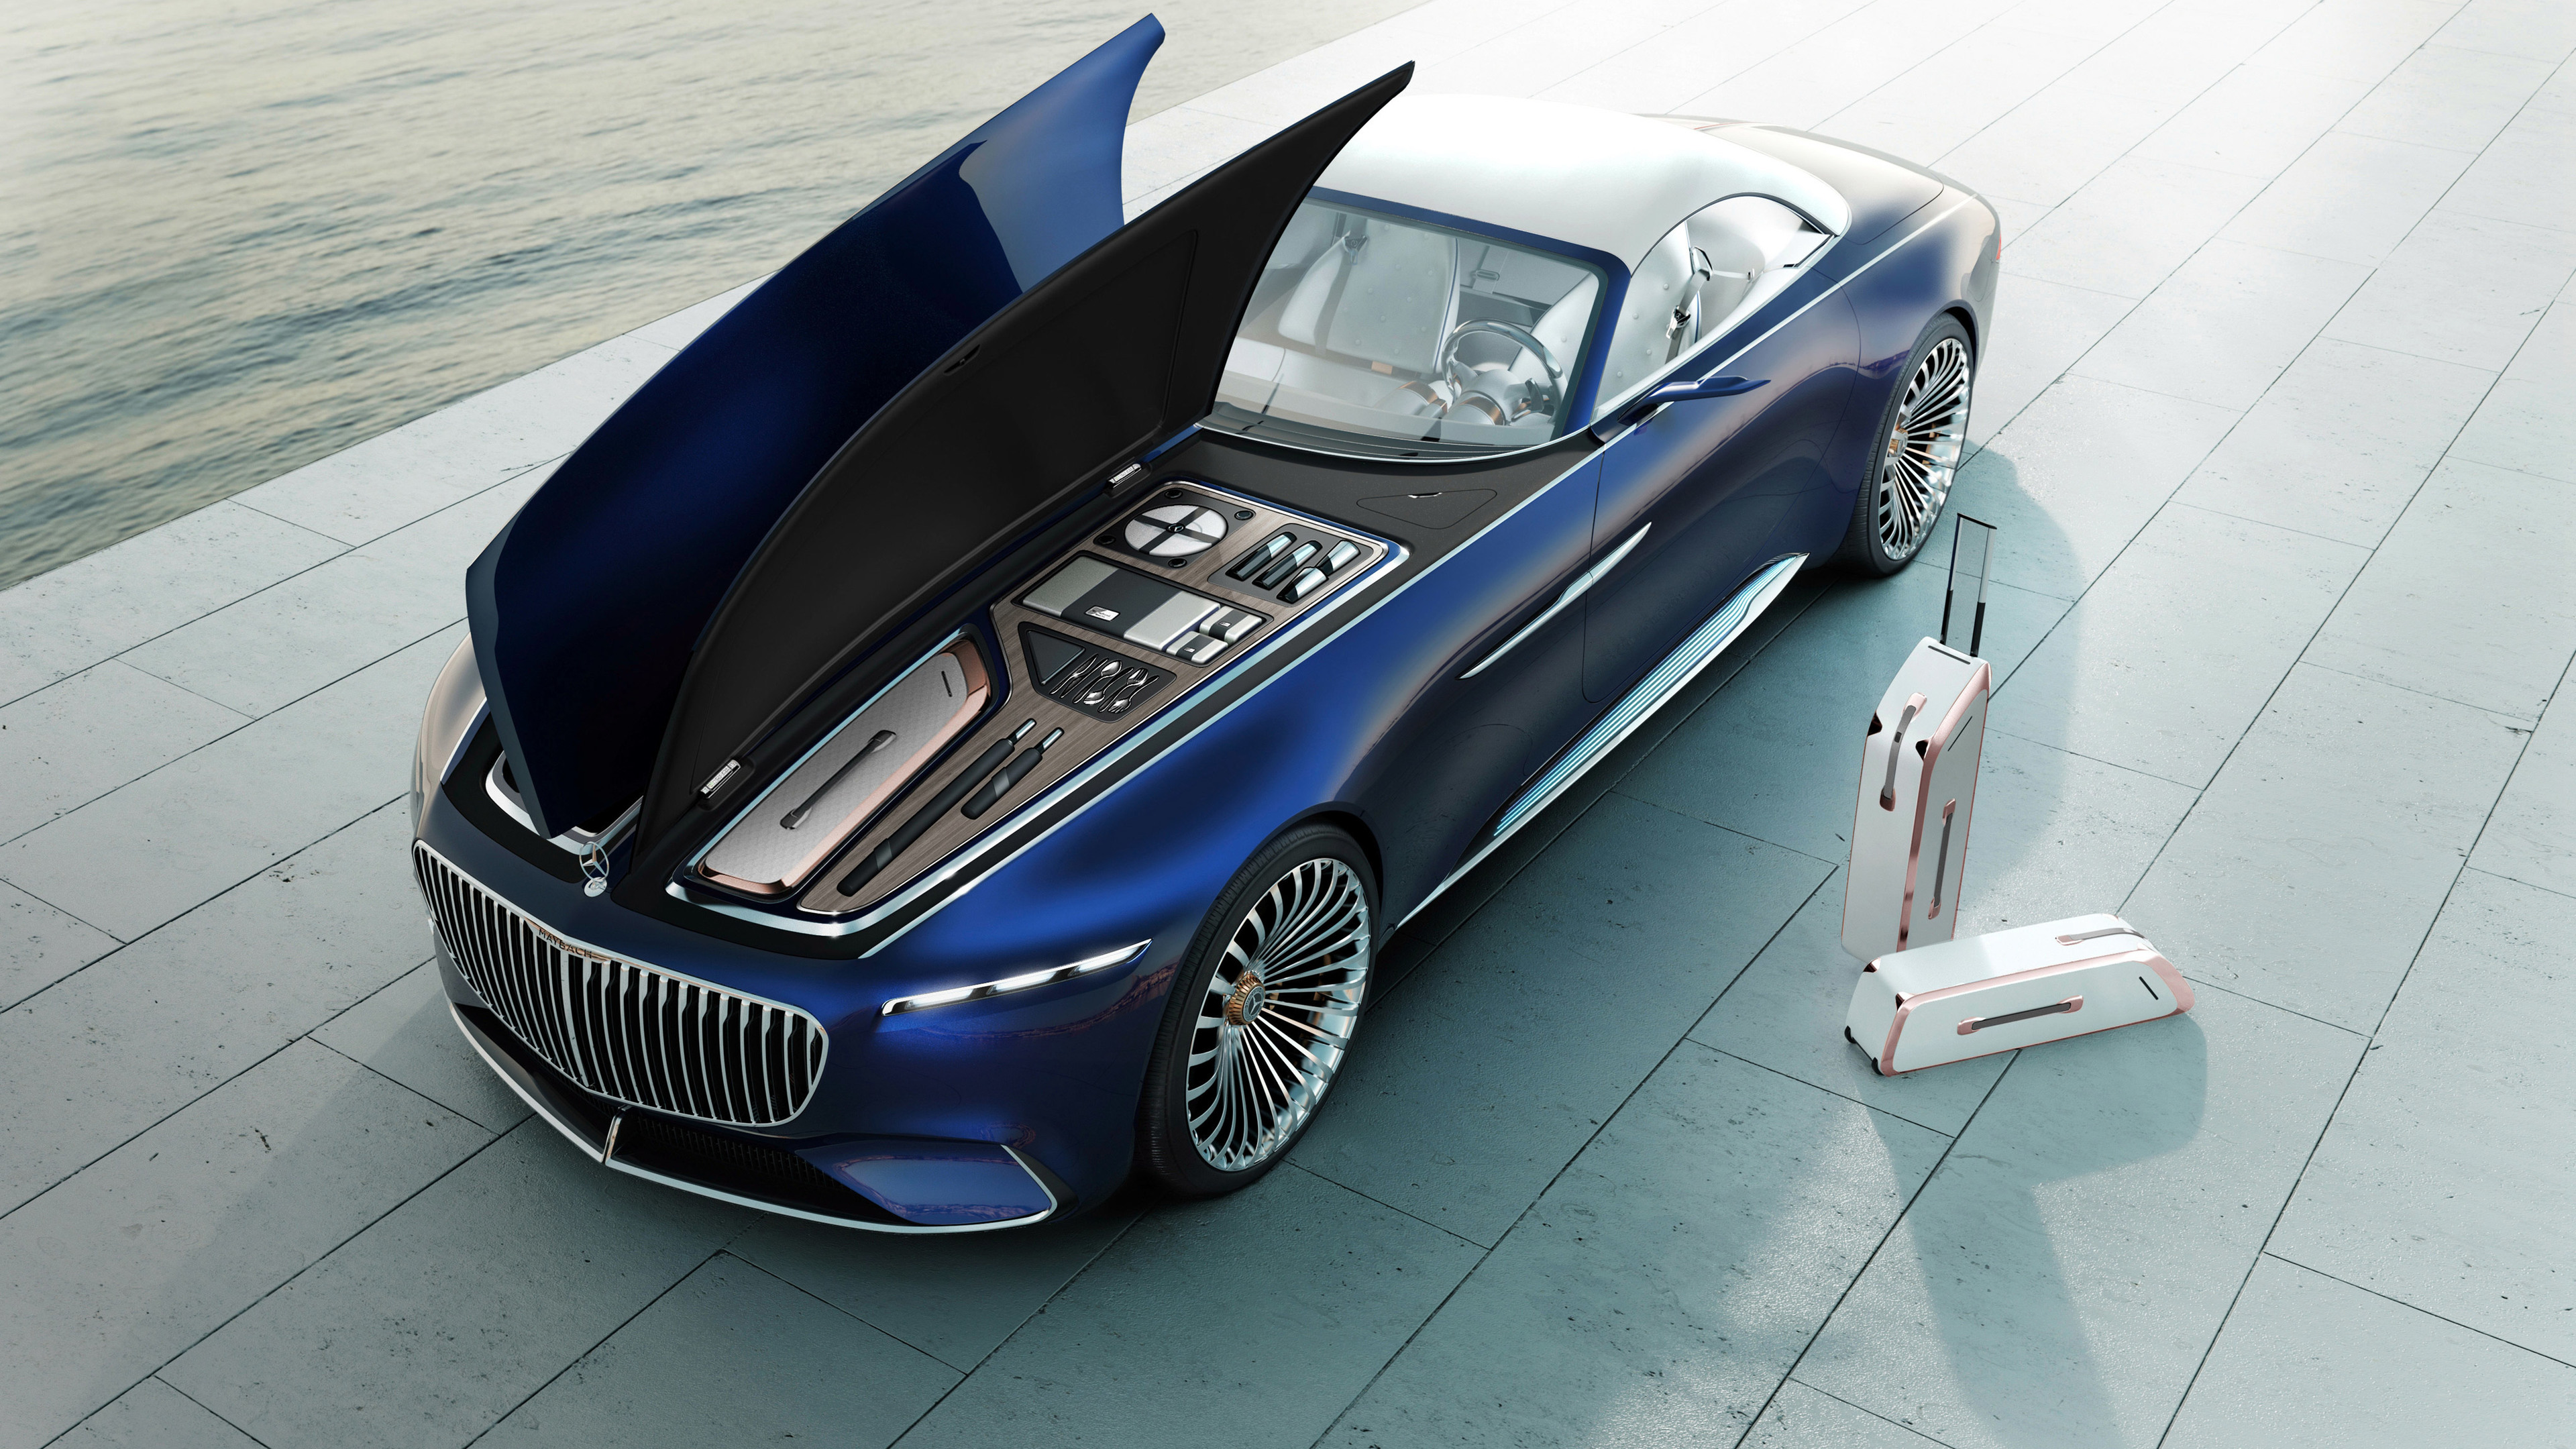 mercedes maybach 6 cabriolet 2017 1539106099 - Mercedes Maybach 6 Cabriolet 2017 - mercedes wallpapers, mercedes maybach wallpapers, hd-wallpapers, electric cars wallpapers, concept cars wallpapers, cars wallpapers, 4k-wallpapers, 2017 cars wallpapers